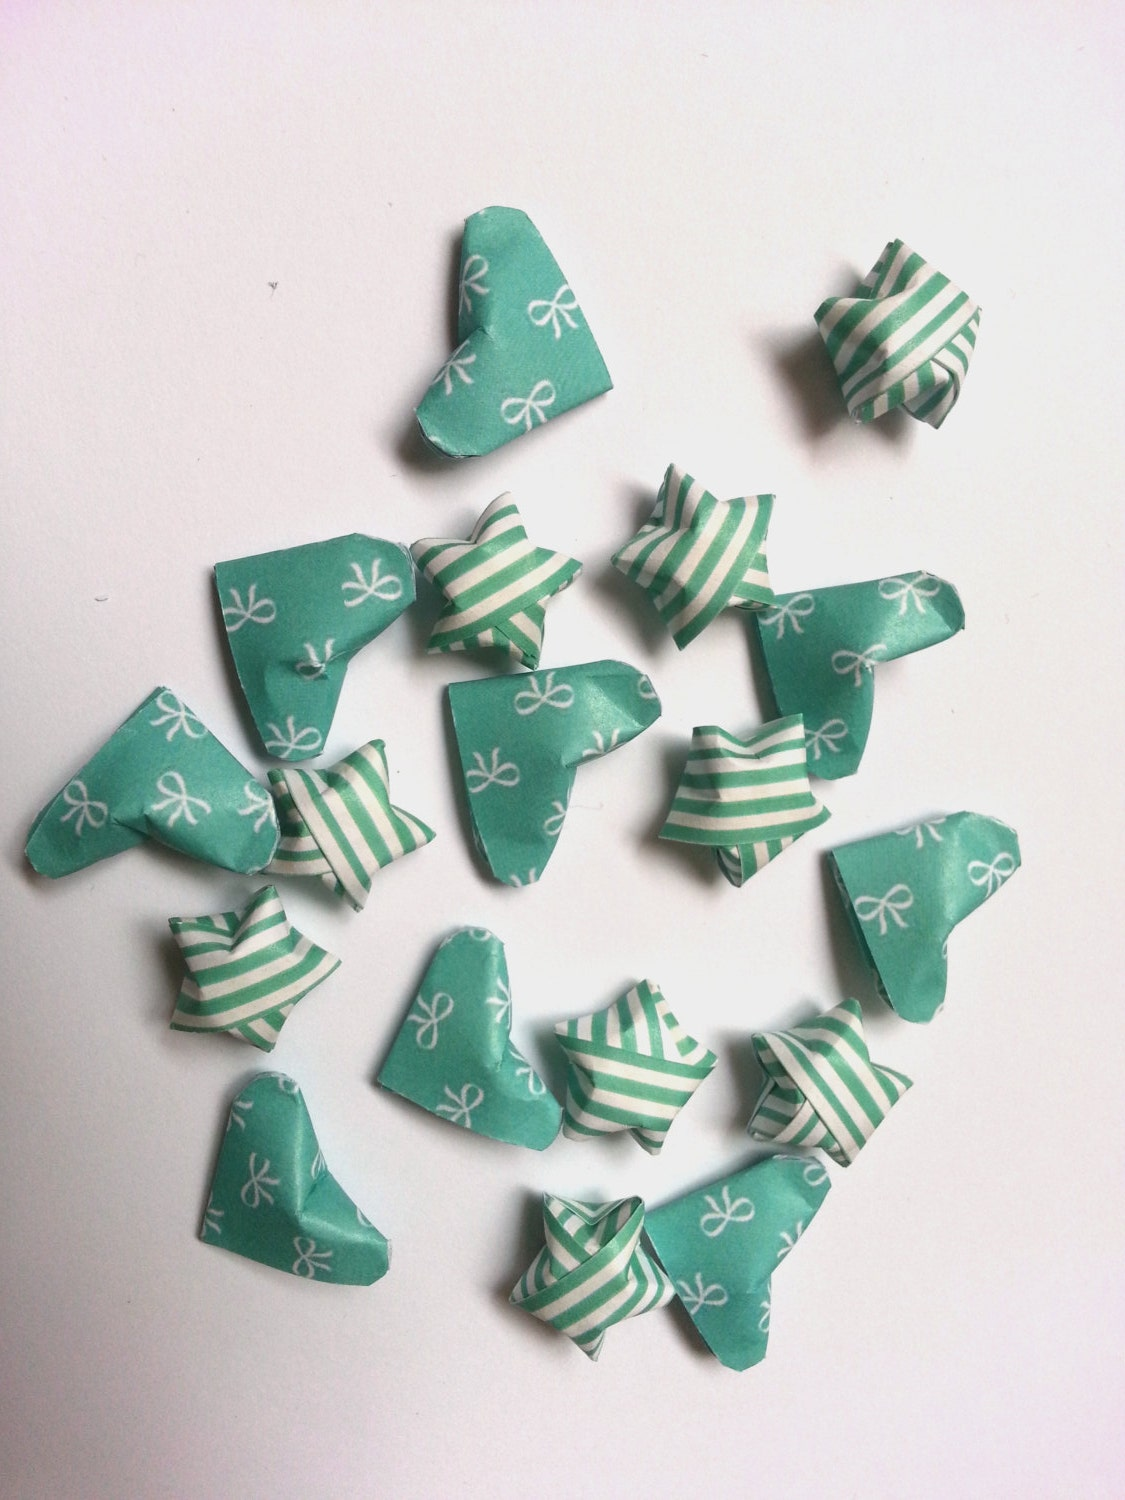 3D Origami Lucky Hearts | Bag n Craft - photo#11